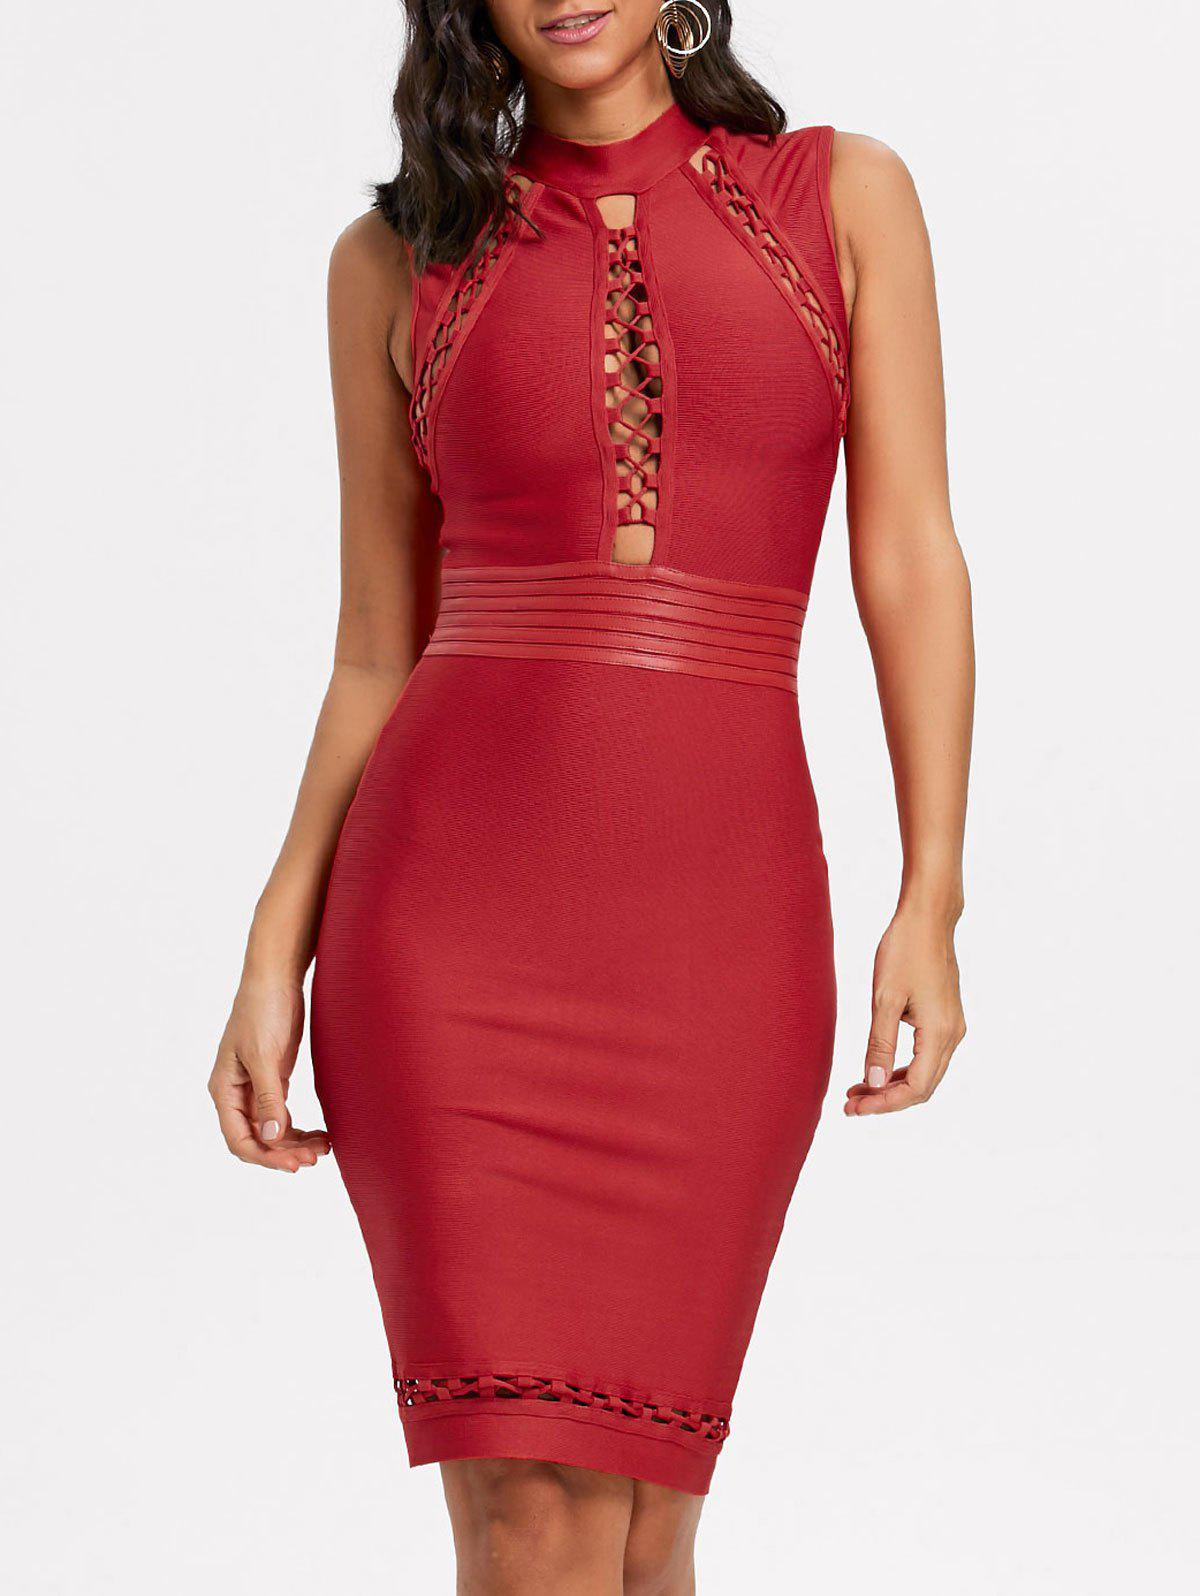 Lattice Cut Out Bodycon Bandage Dress - RED S